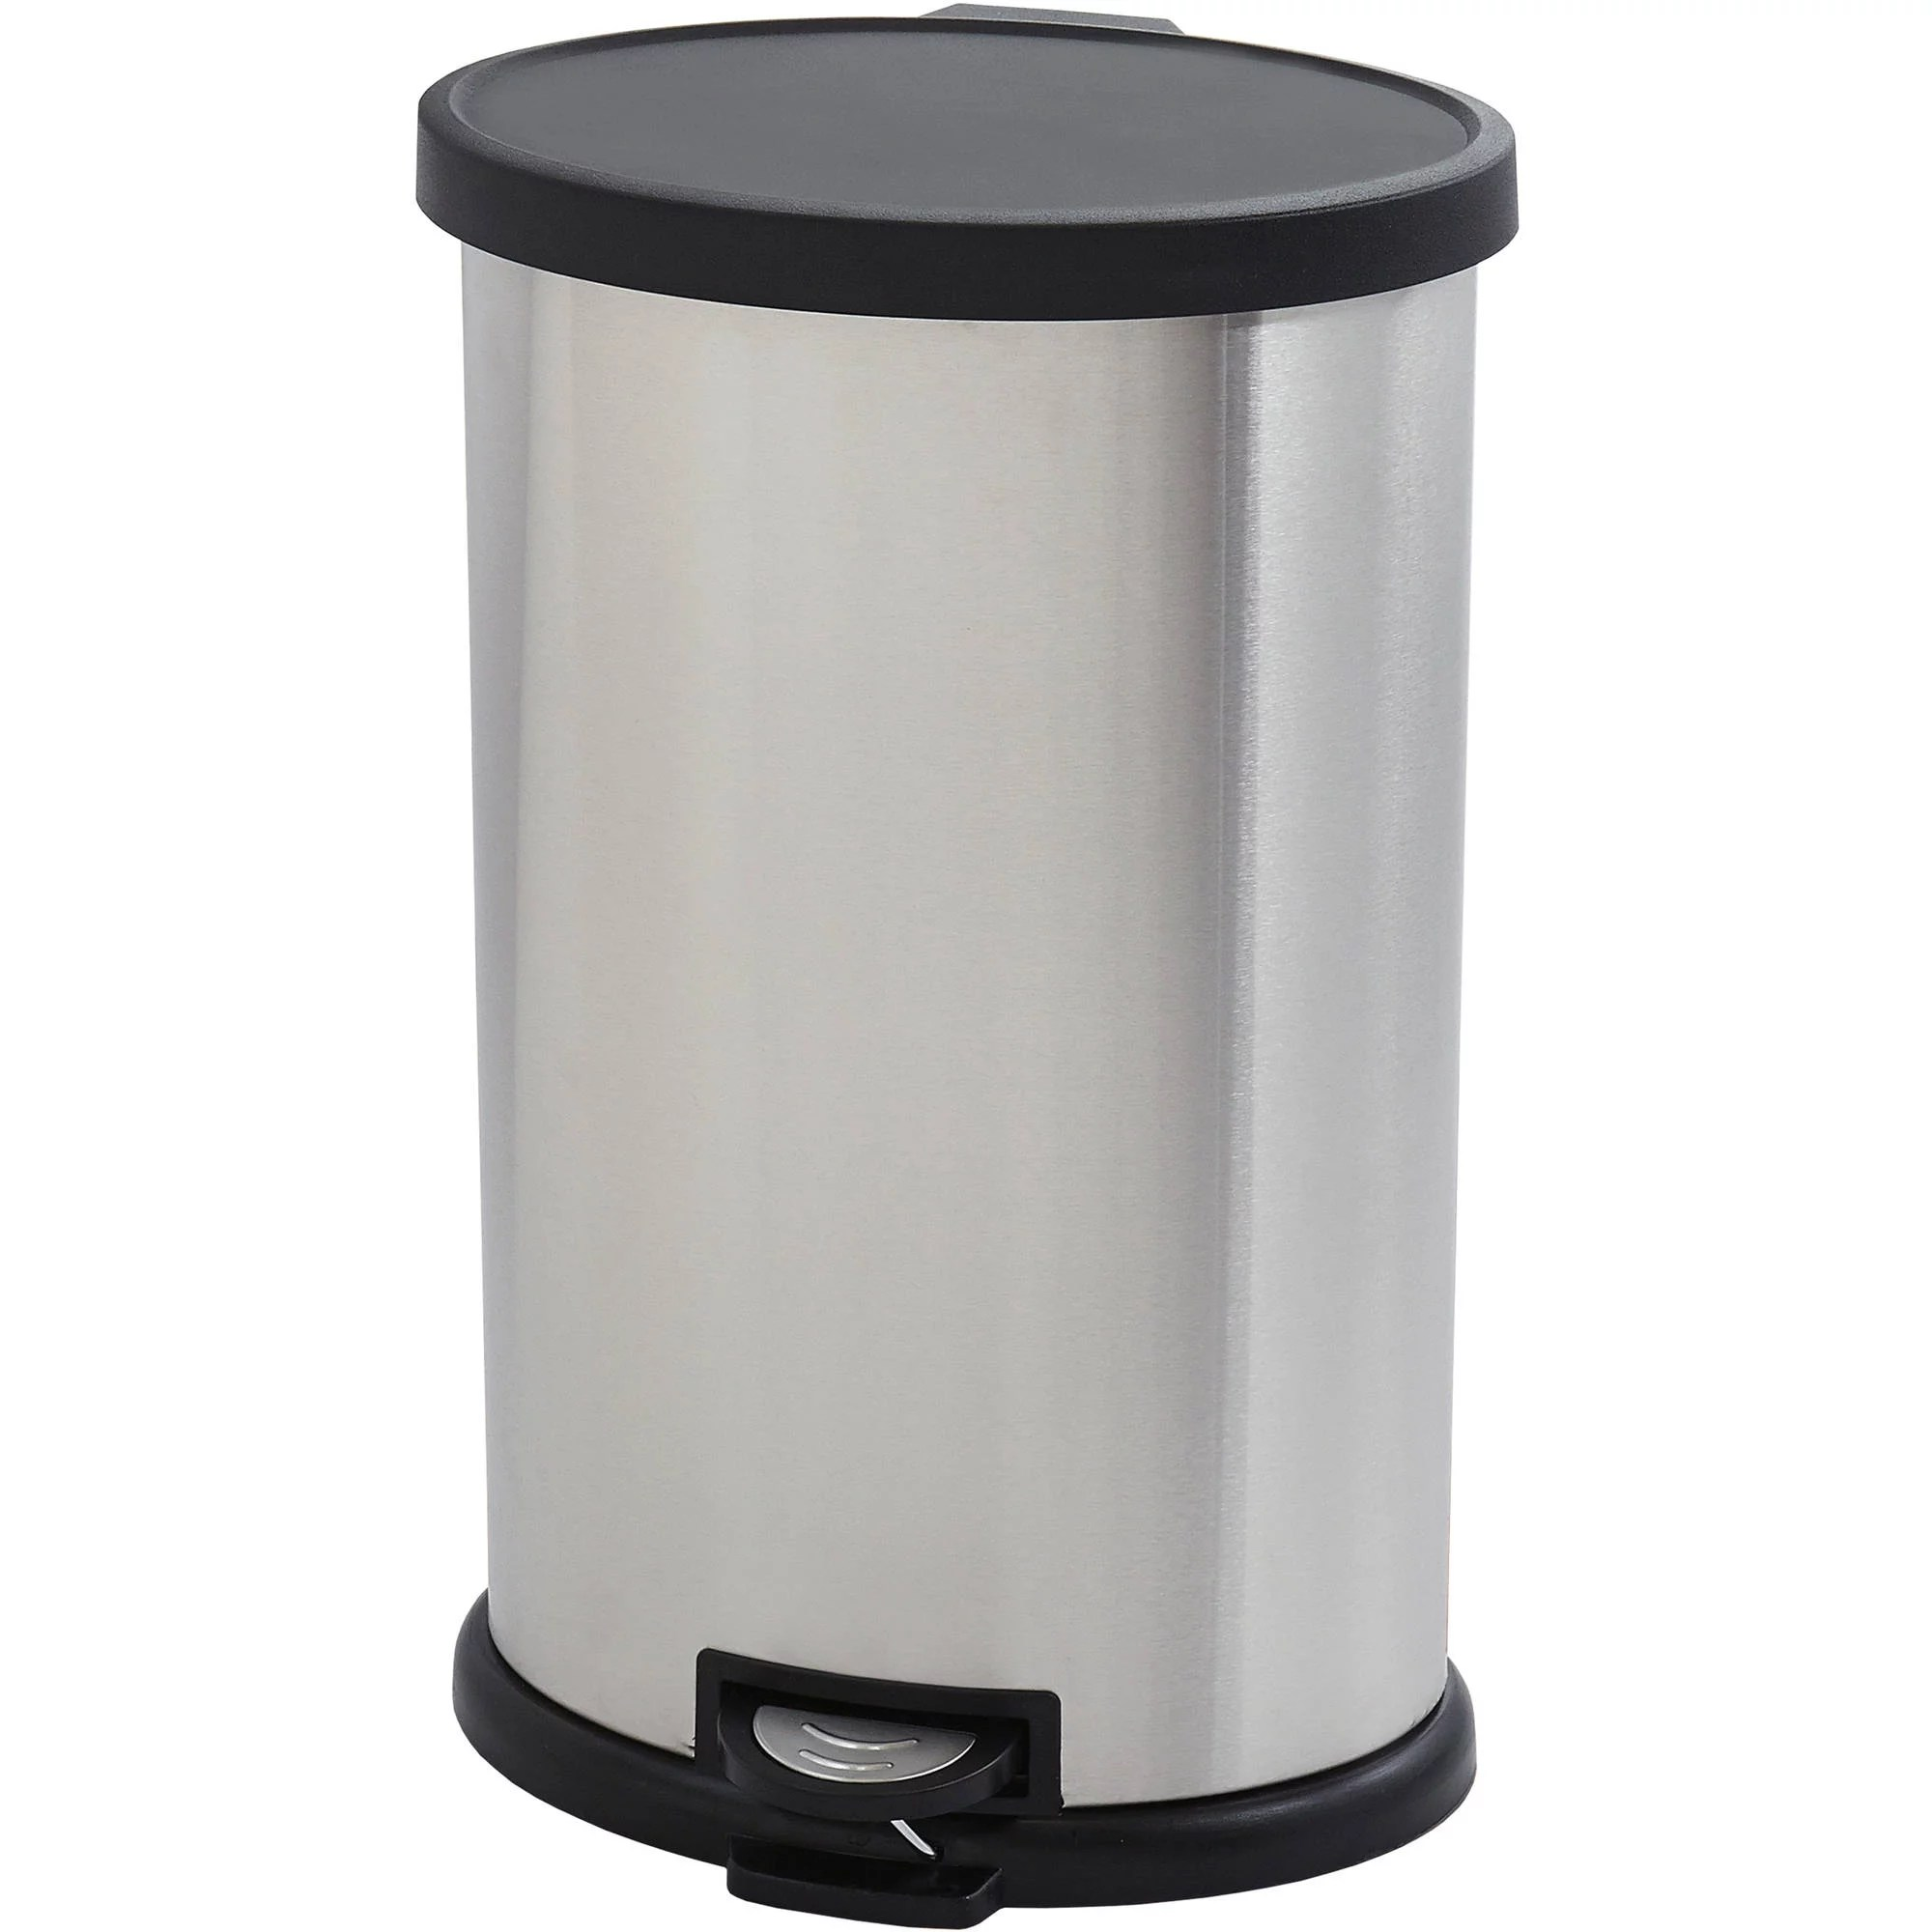 Elegant Trash Can Better Homes And Gardens 30 Liter Oval Trashcan Stainless Steel